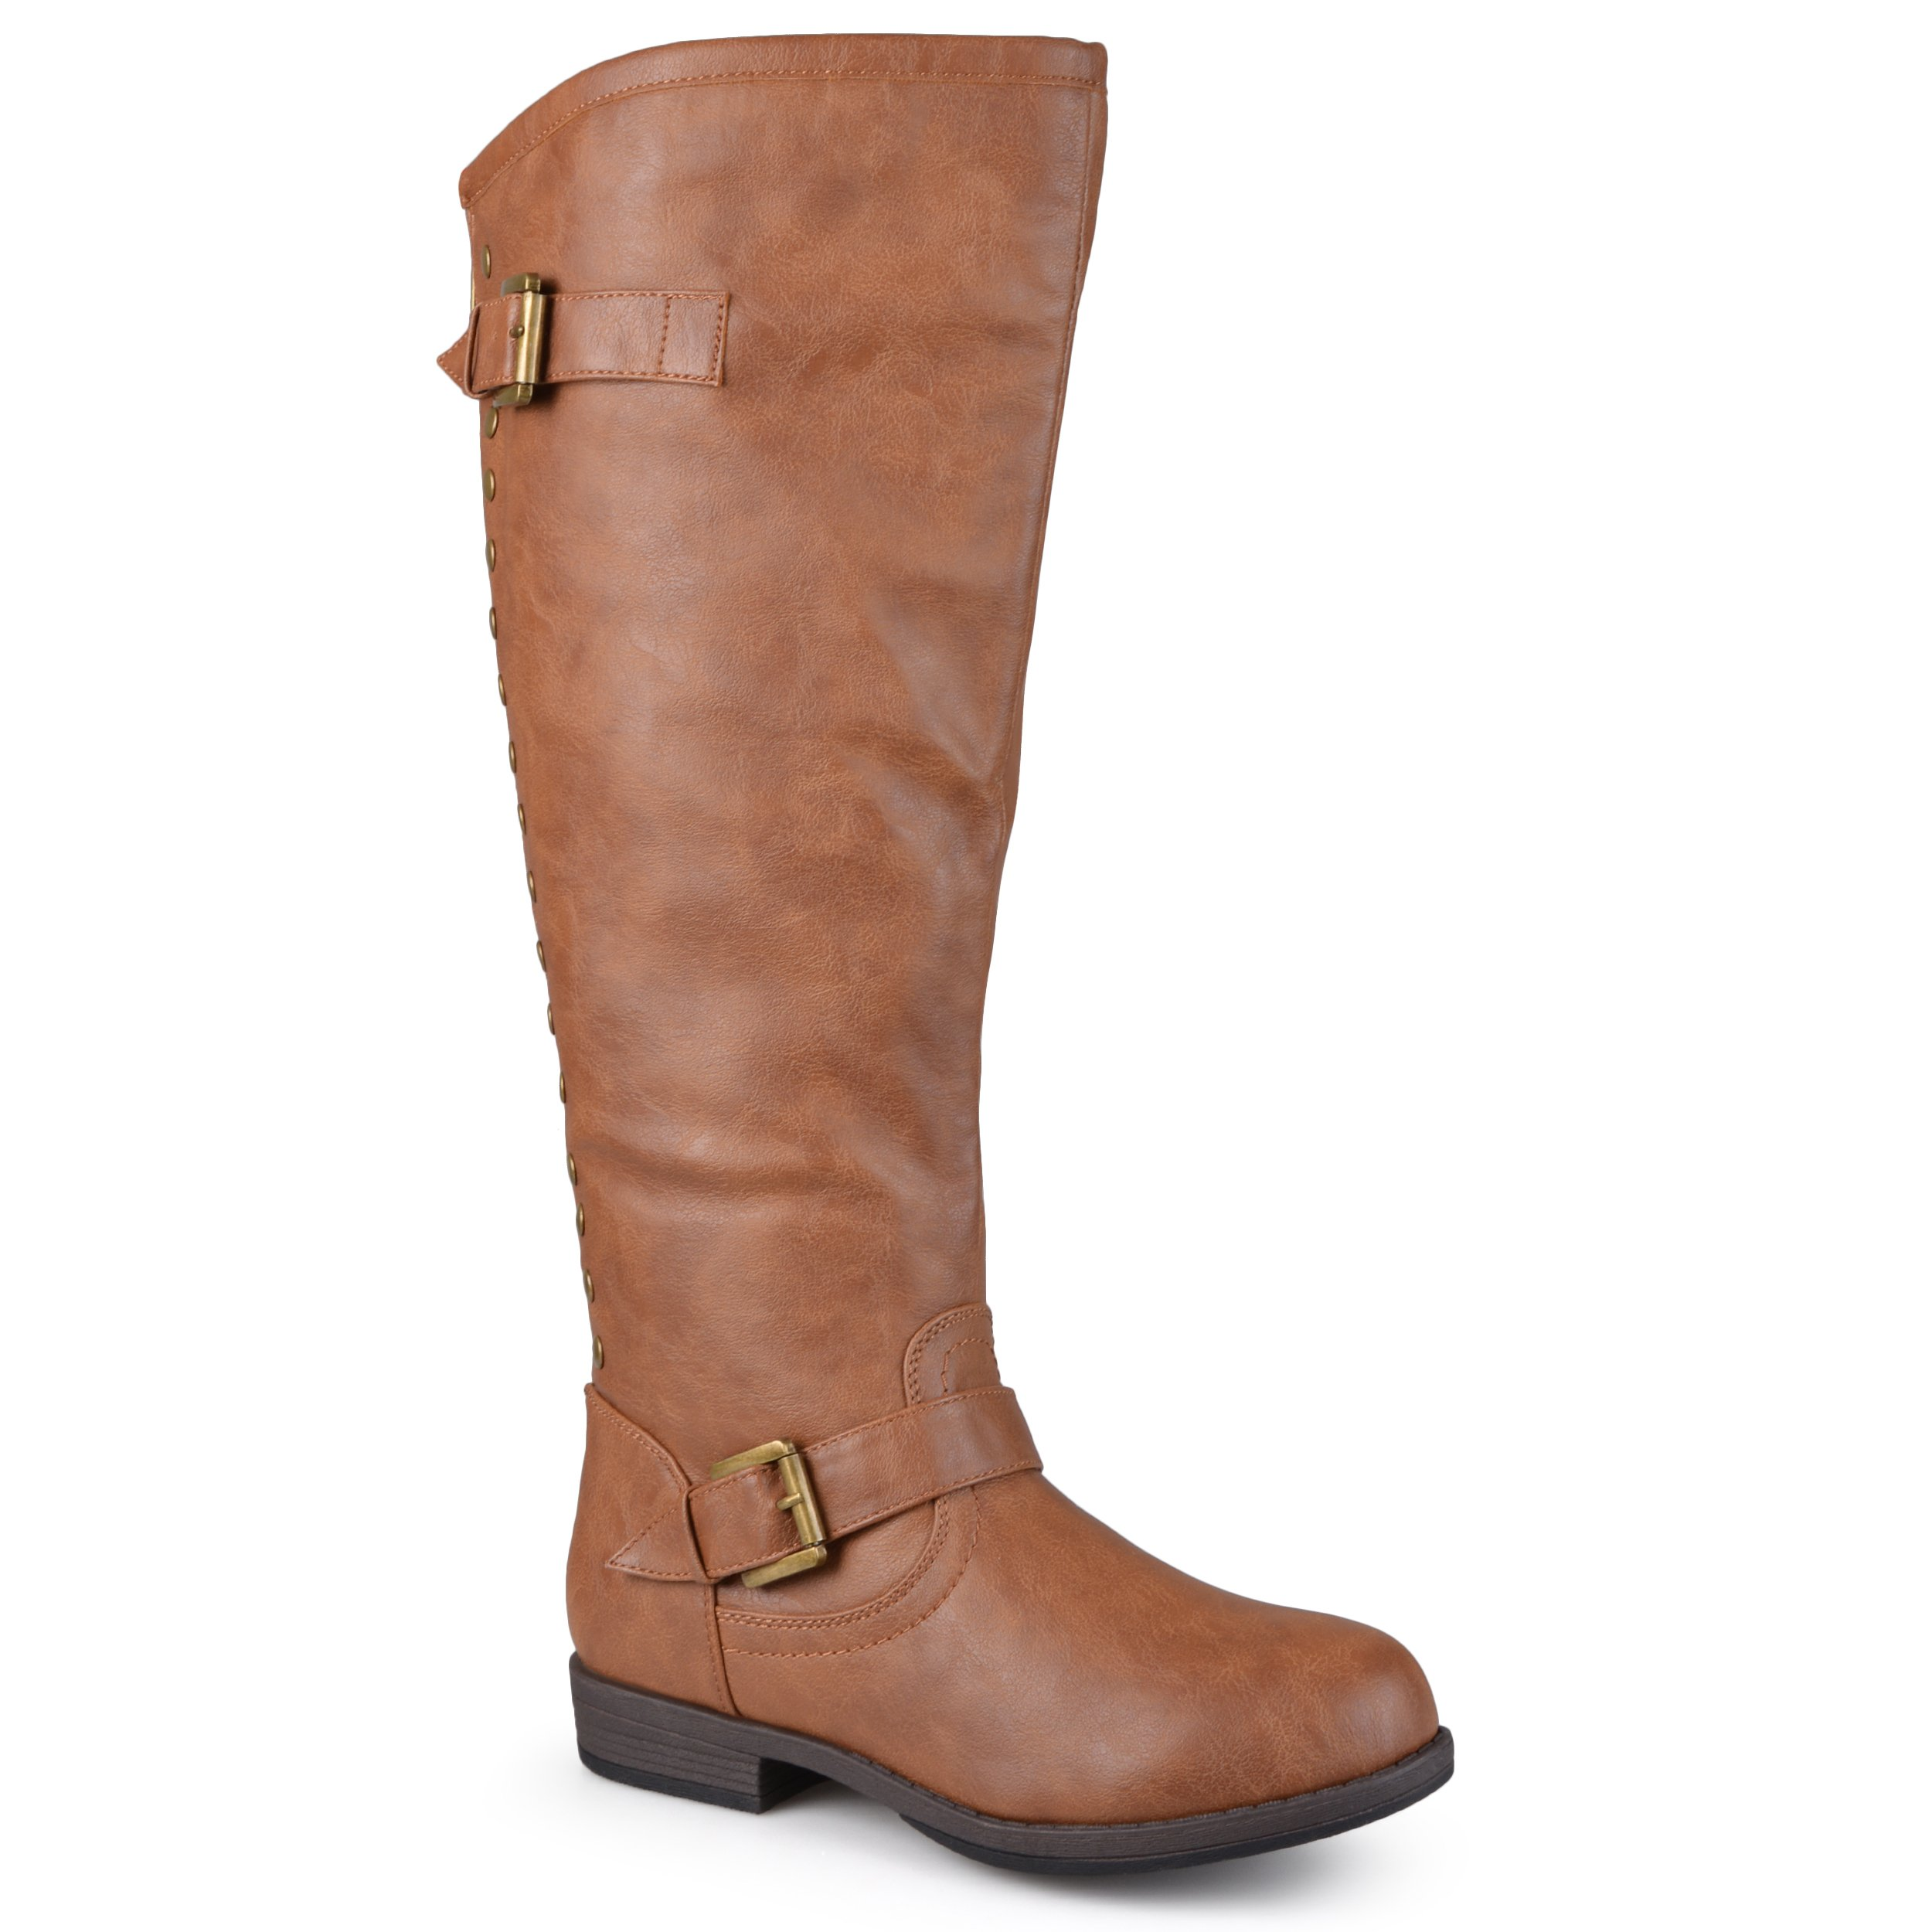 Journee Collection Womens Regular Sized, Wide-Calf and Extra Wide-Calf Studded Knee-High Riding Boots Chestnut, 10 Extra Wide Calf US